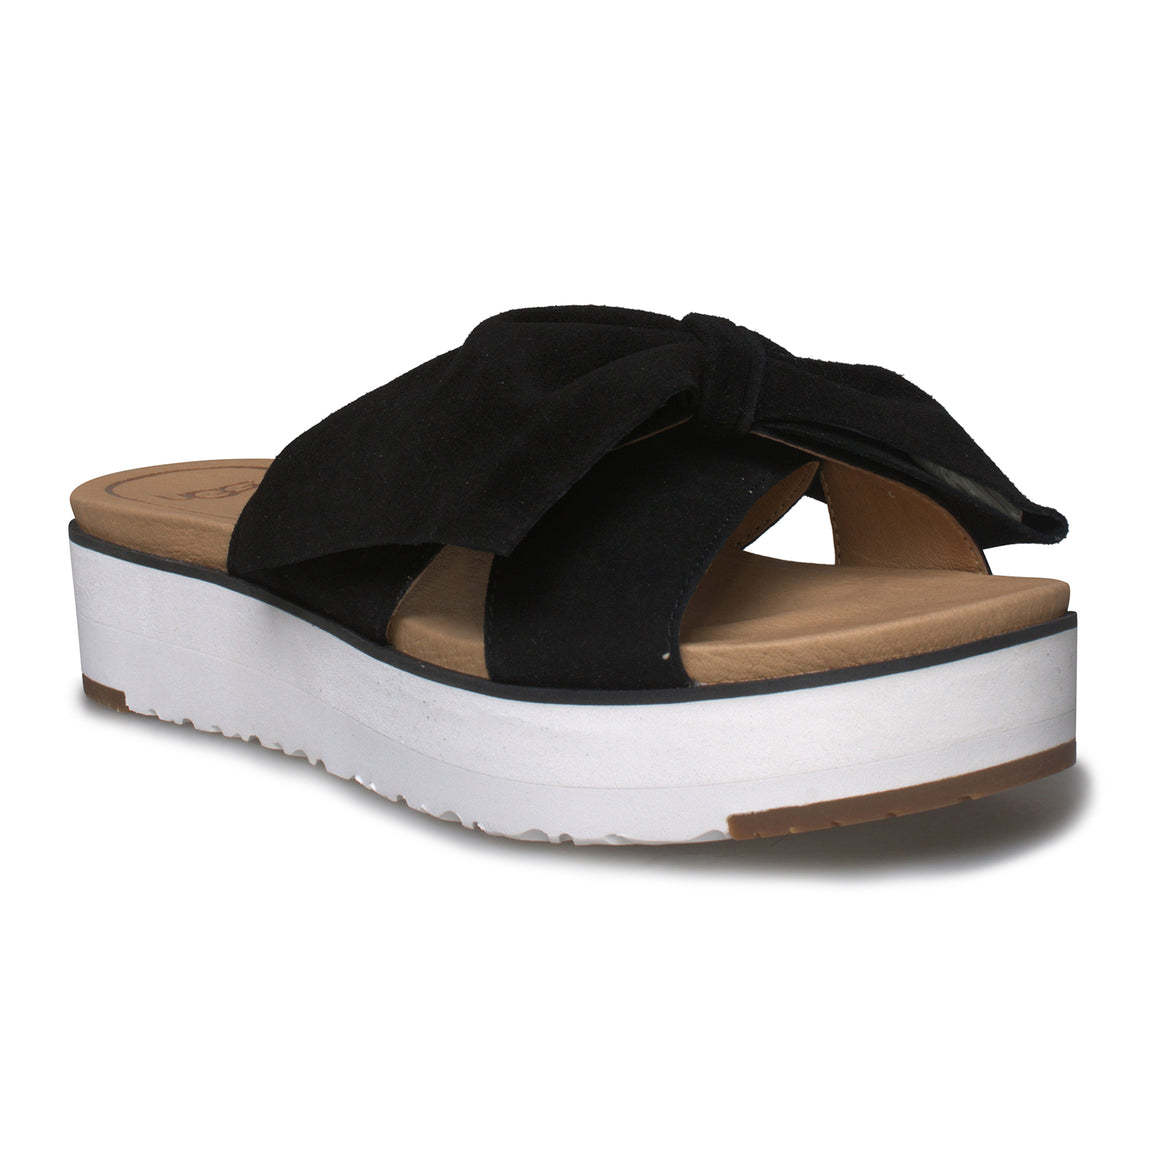 UGG Joan II Black Sandals - Women's